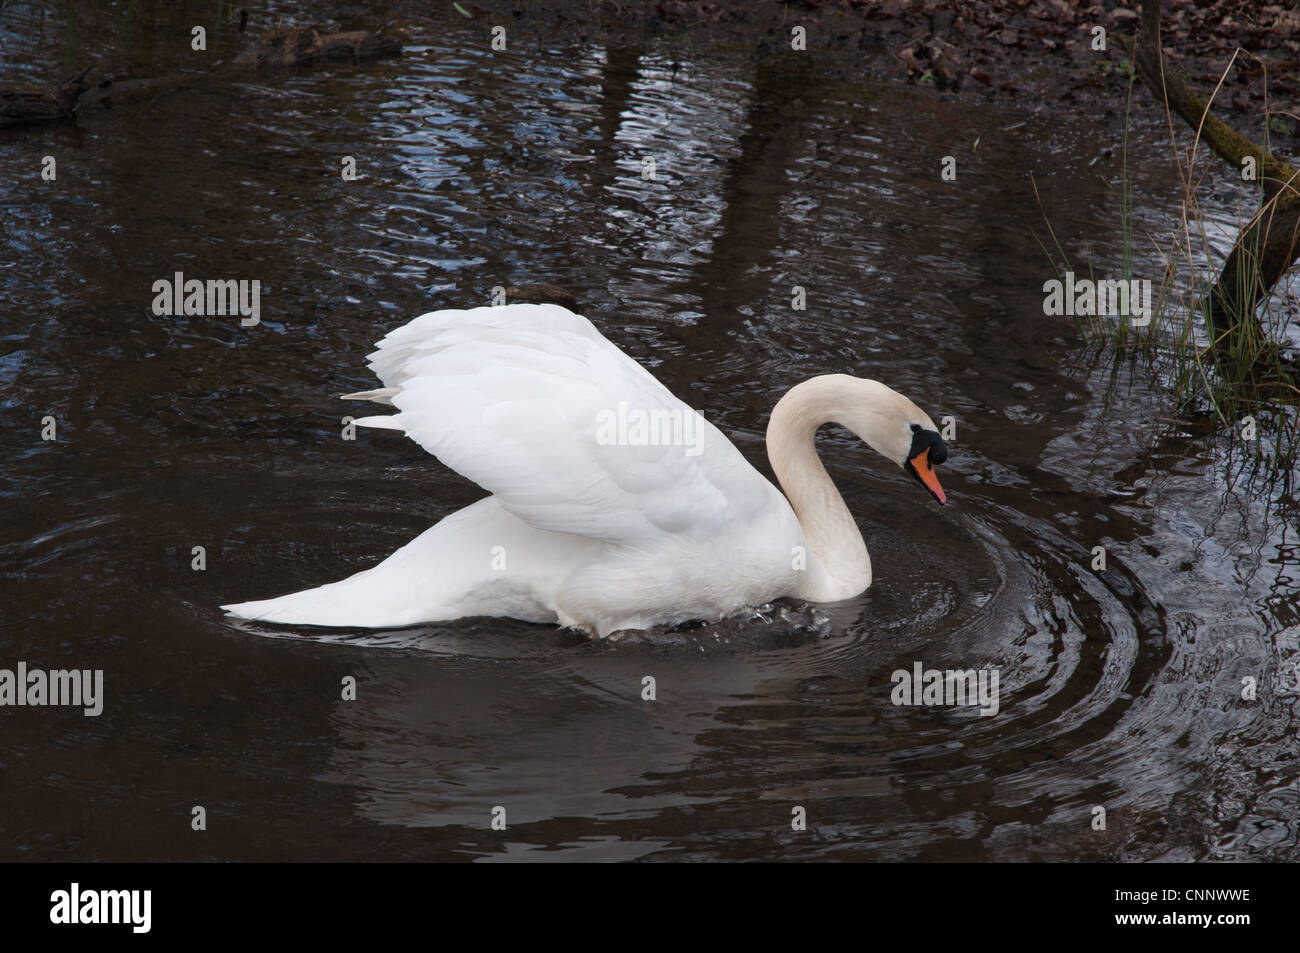 Mute Swan (Cygnus olor) on water showing feathers ripples reflections trees - Stock Image